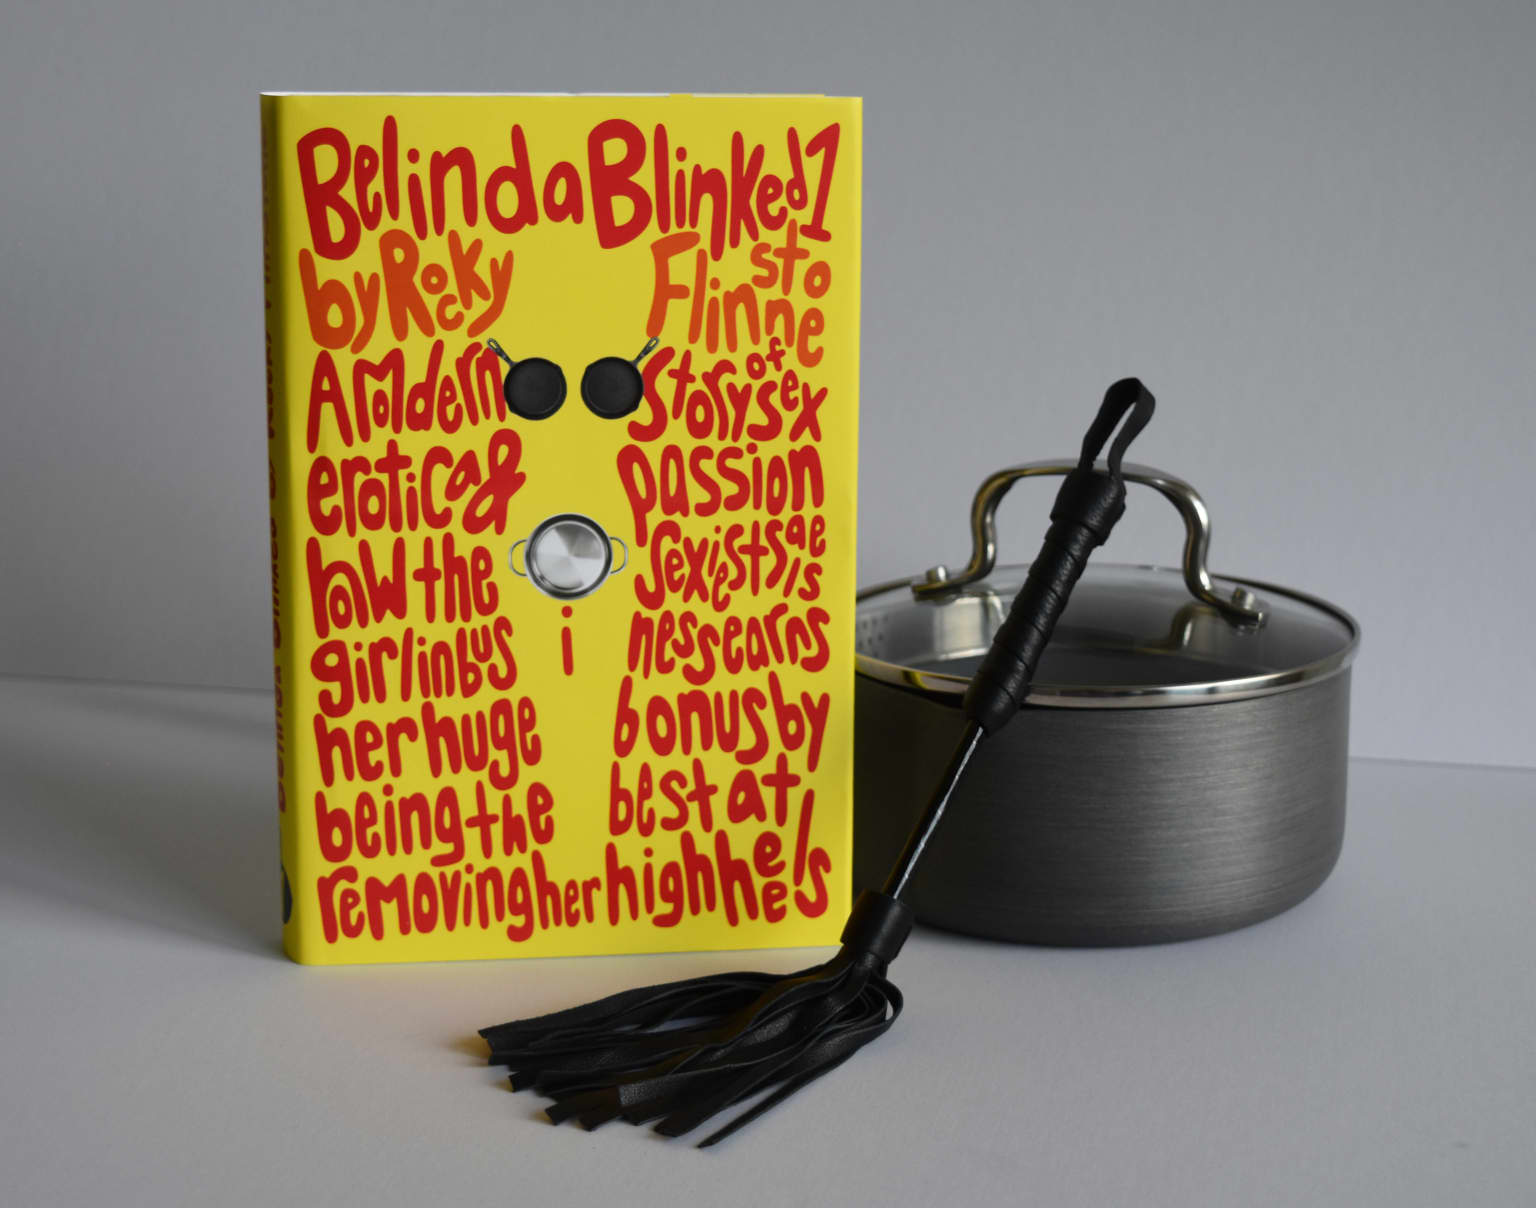 Belinda Blinked Book Covers